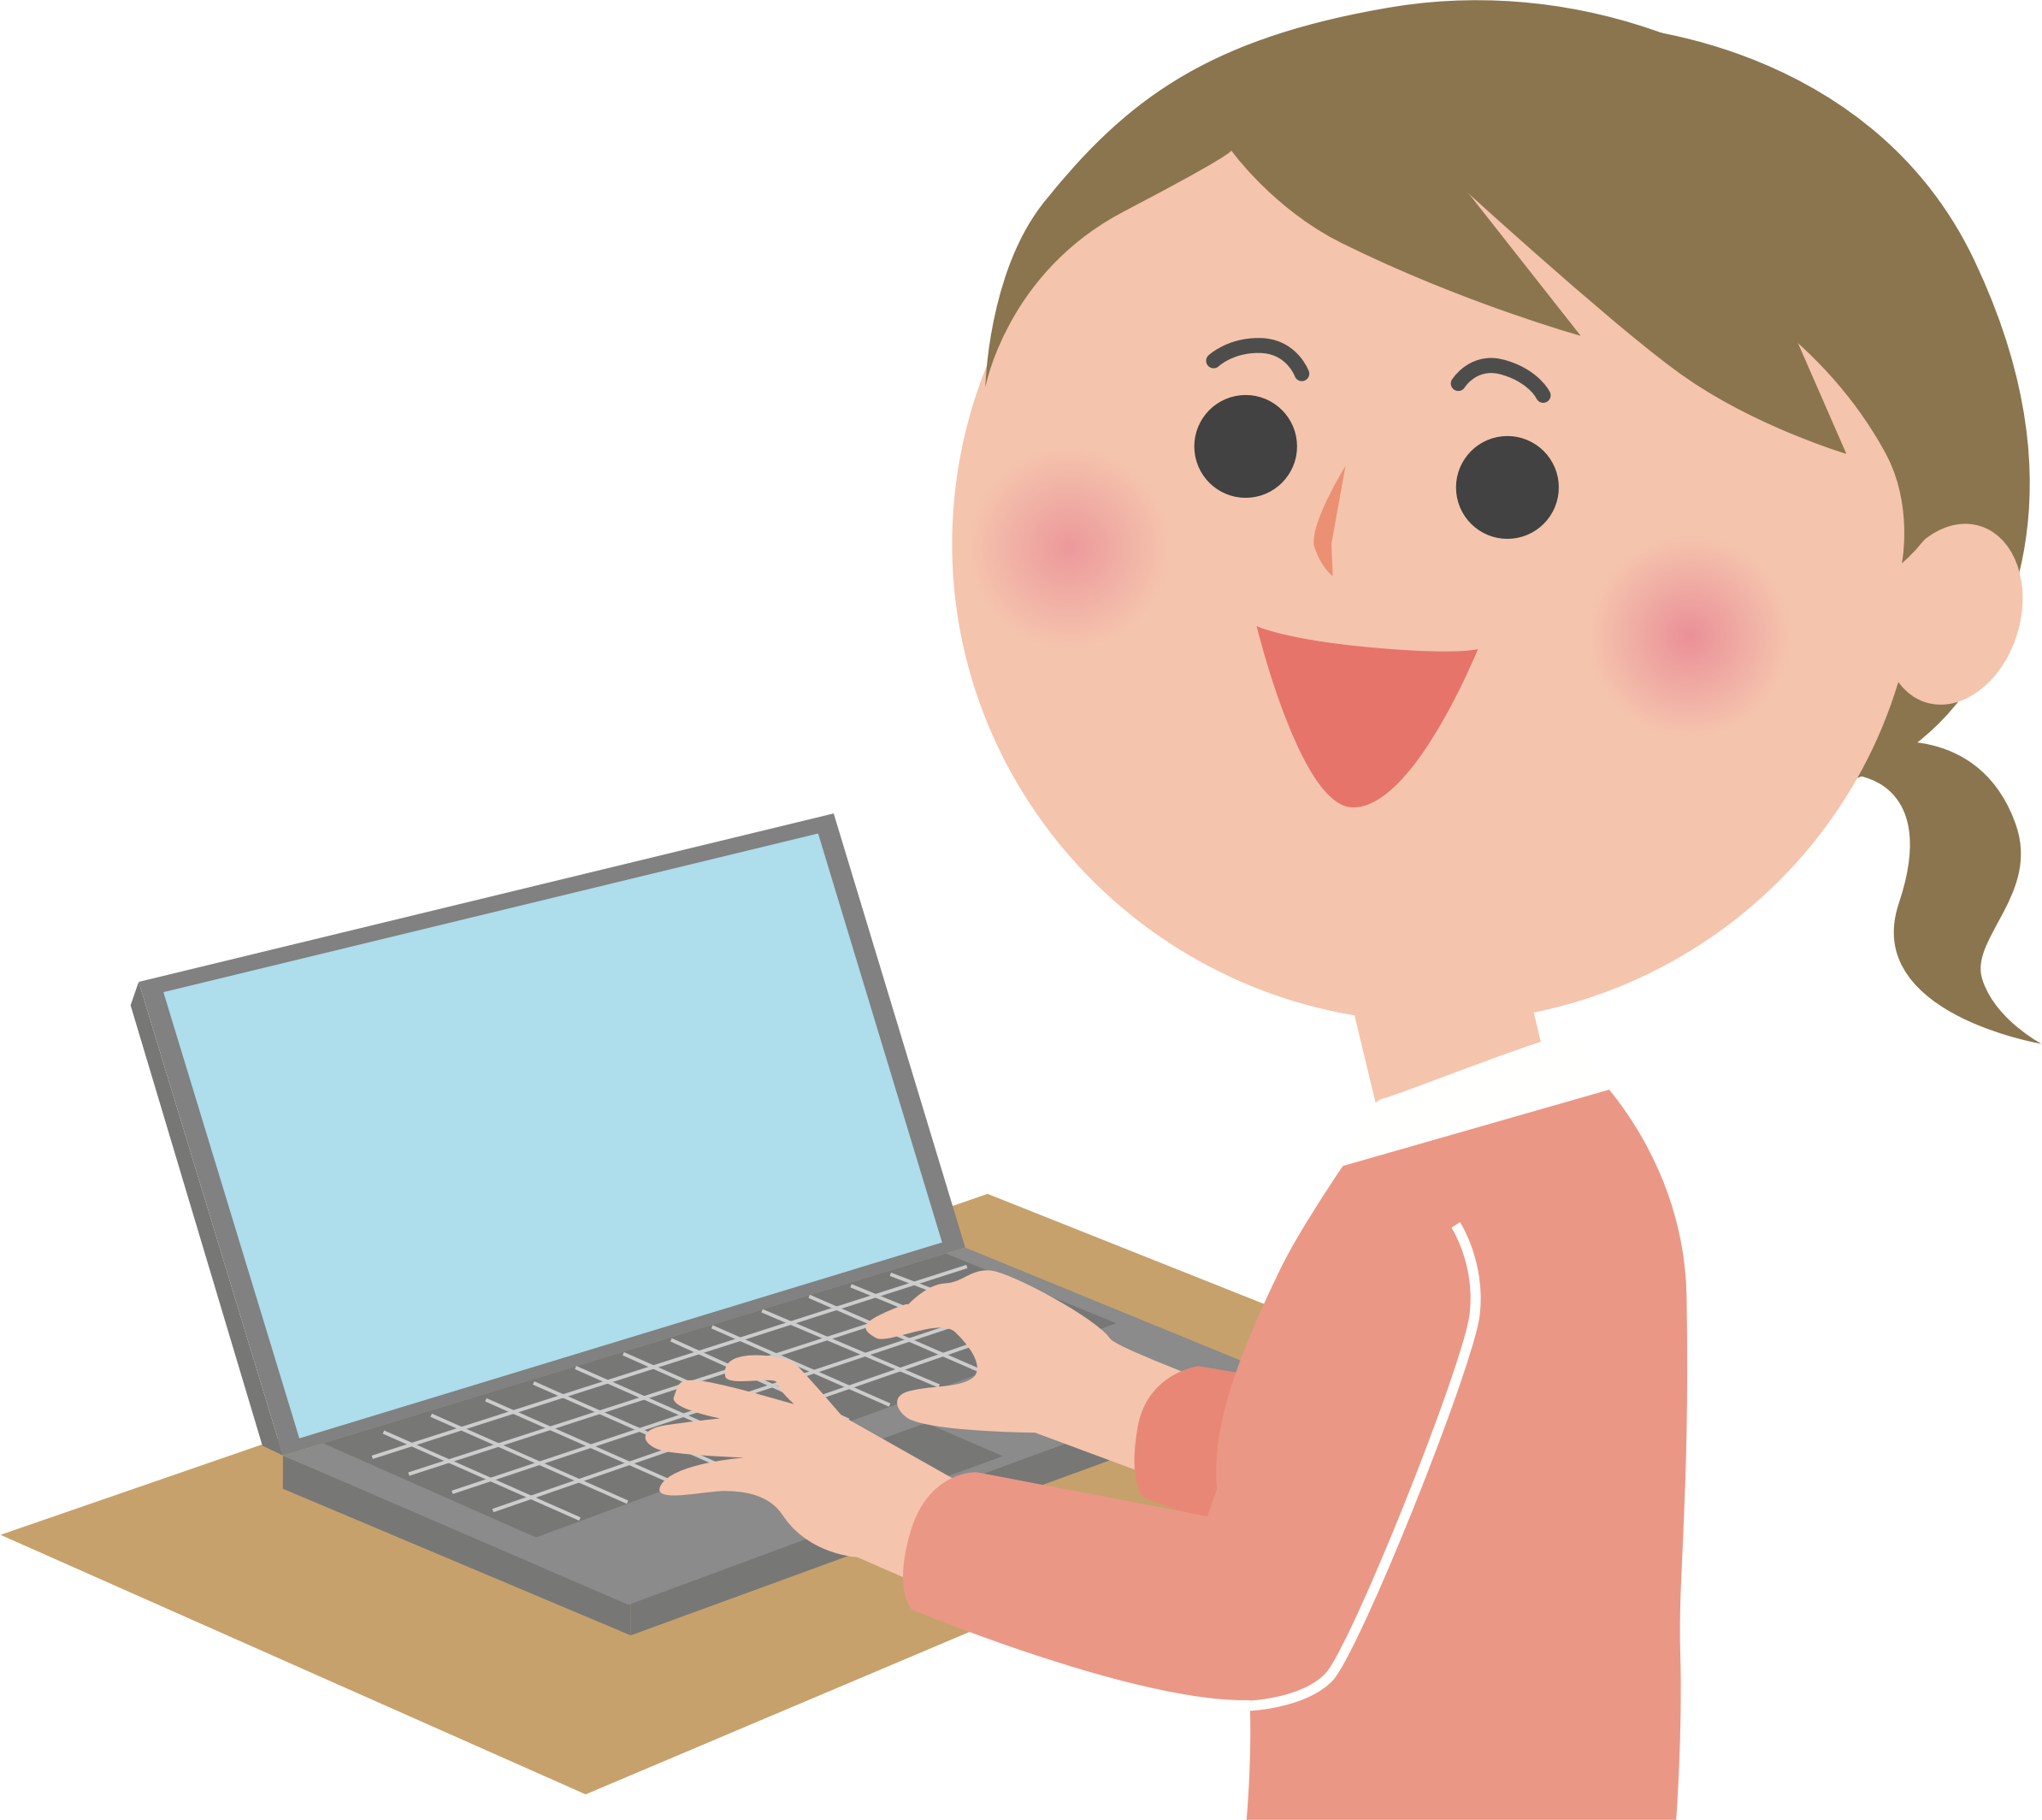 Clipart computer child. Female user big image